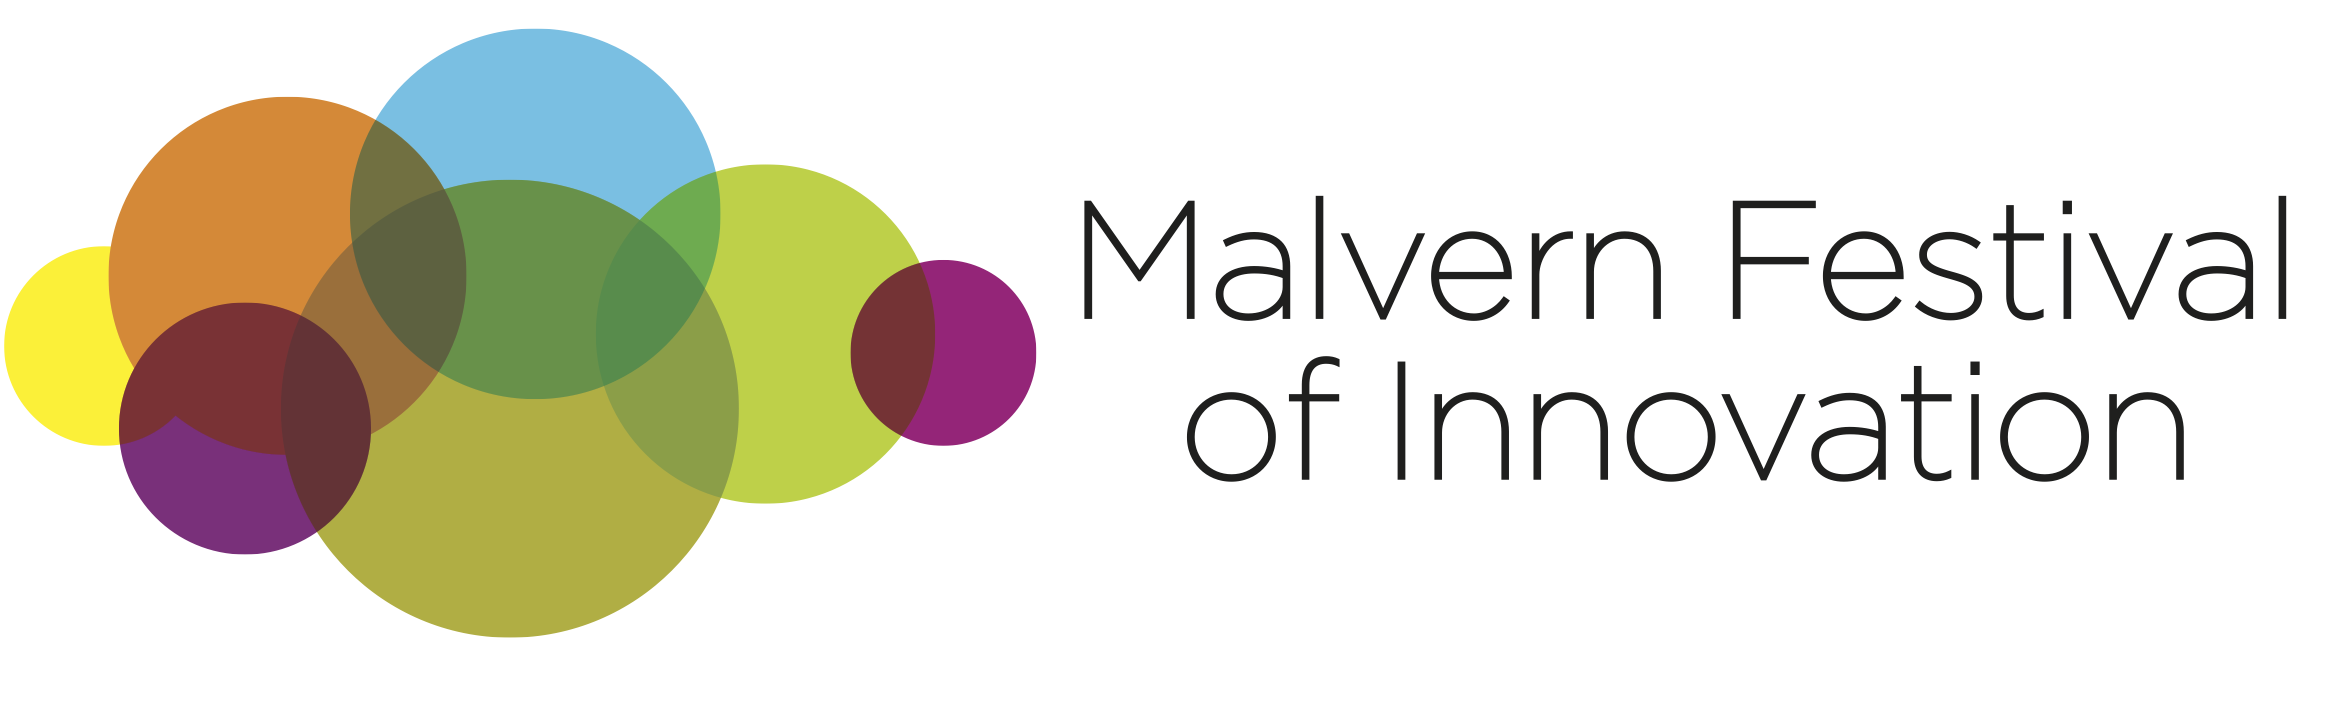 Malvern Festival of Innovation | Family Day